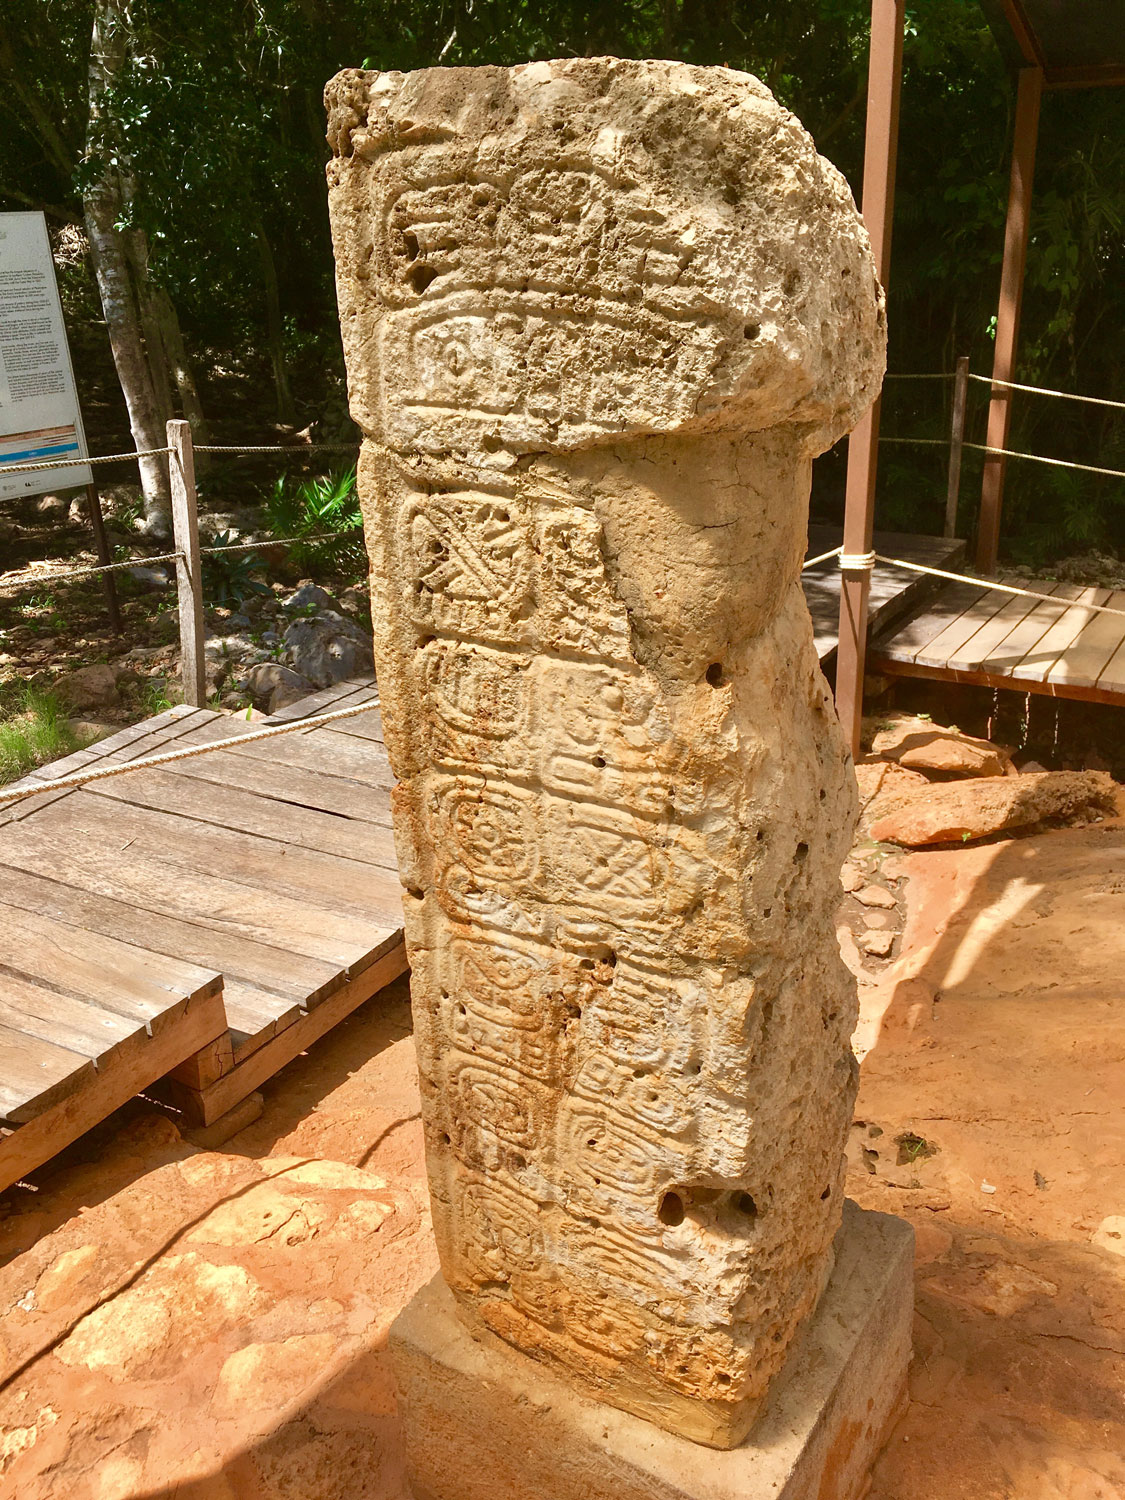 A stela by the entrance with no description or date.